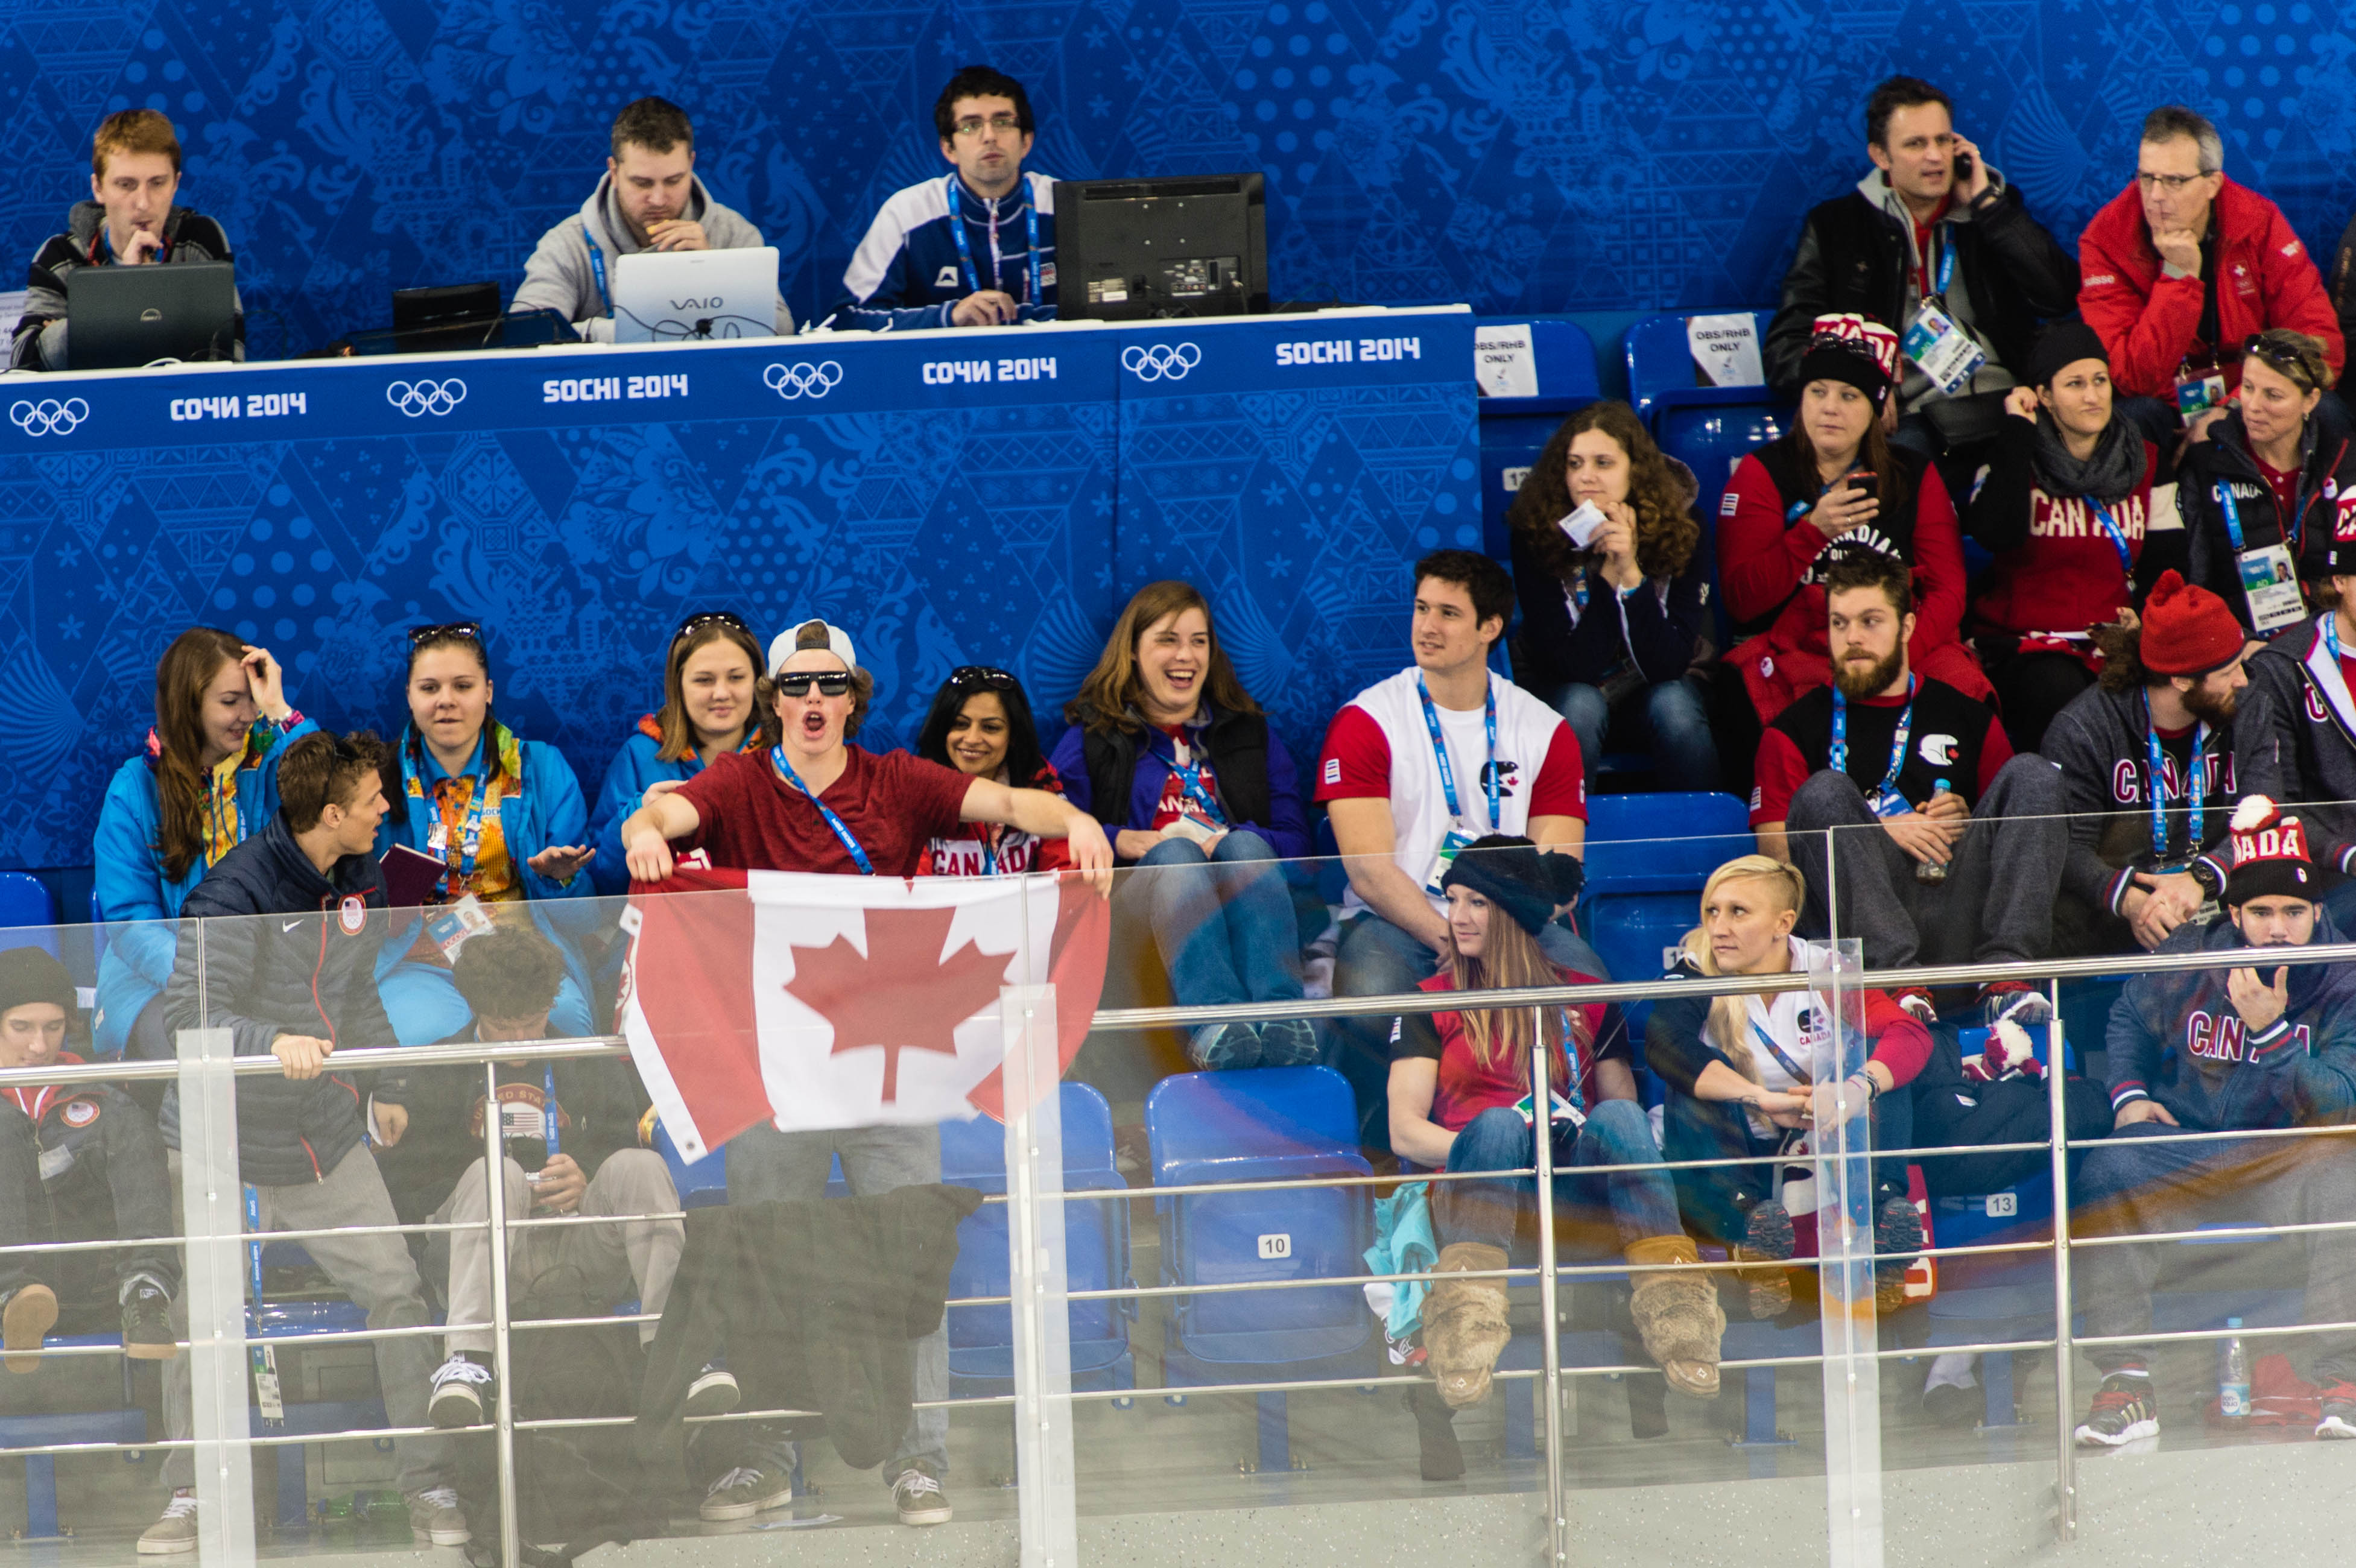 Fellow Canadian athletes cheer on the Women's Hockey Team.